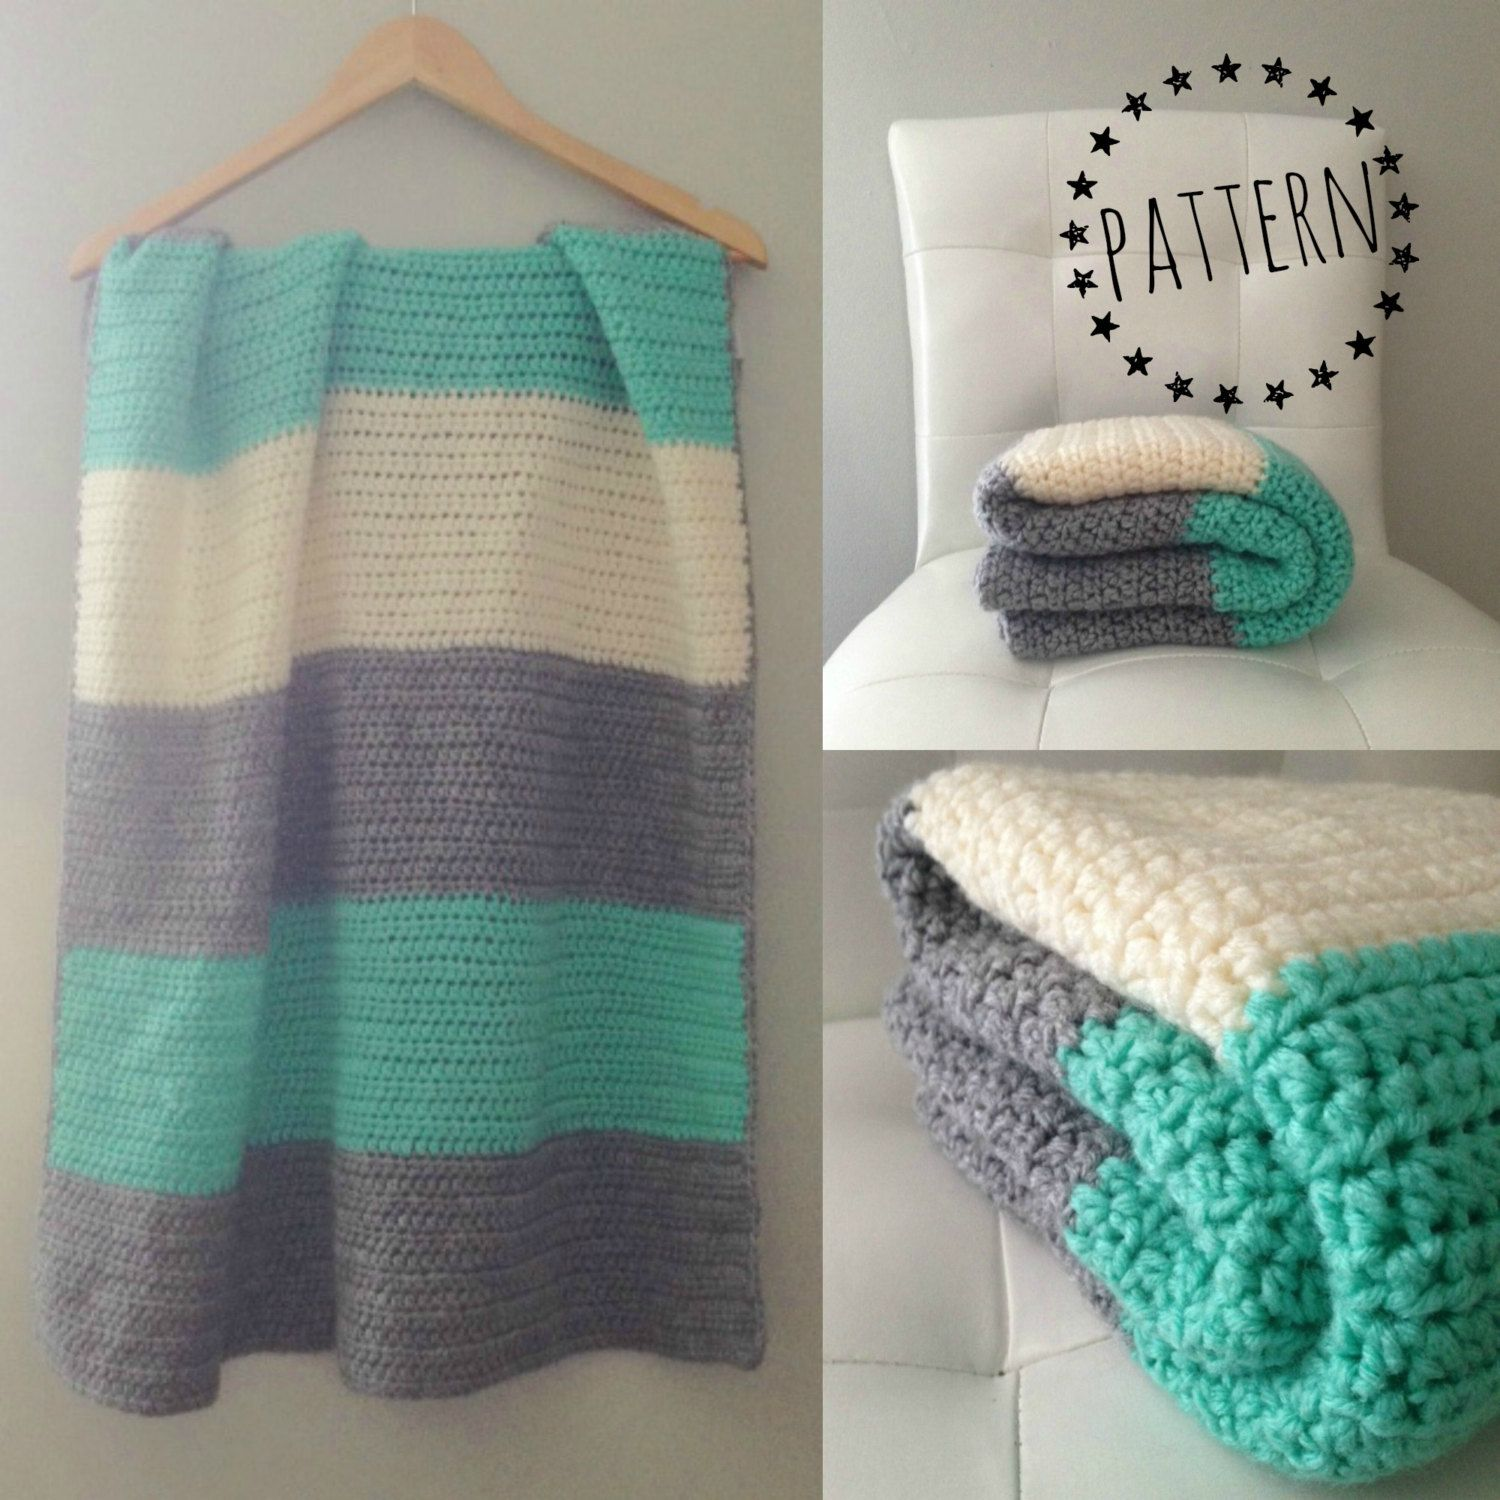 Crochet Color Block Blanket Pattern catandcrown 3.75 CAD October 16 ...